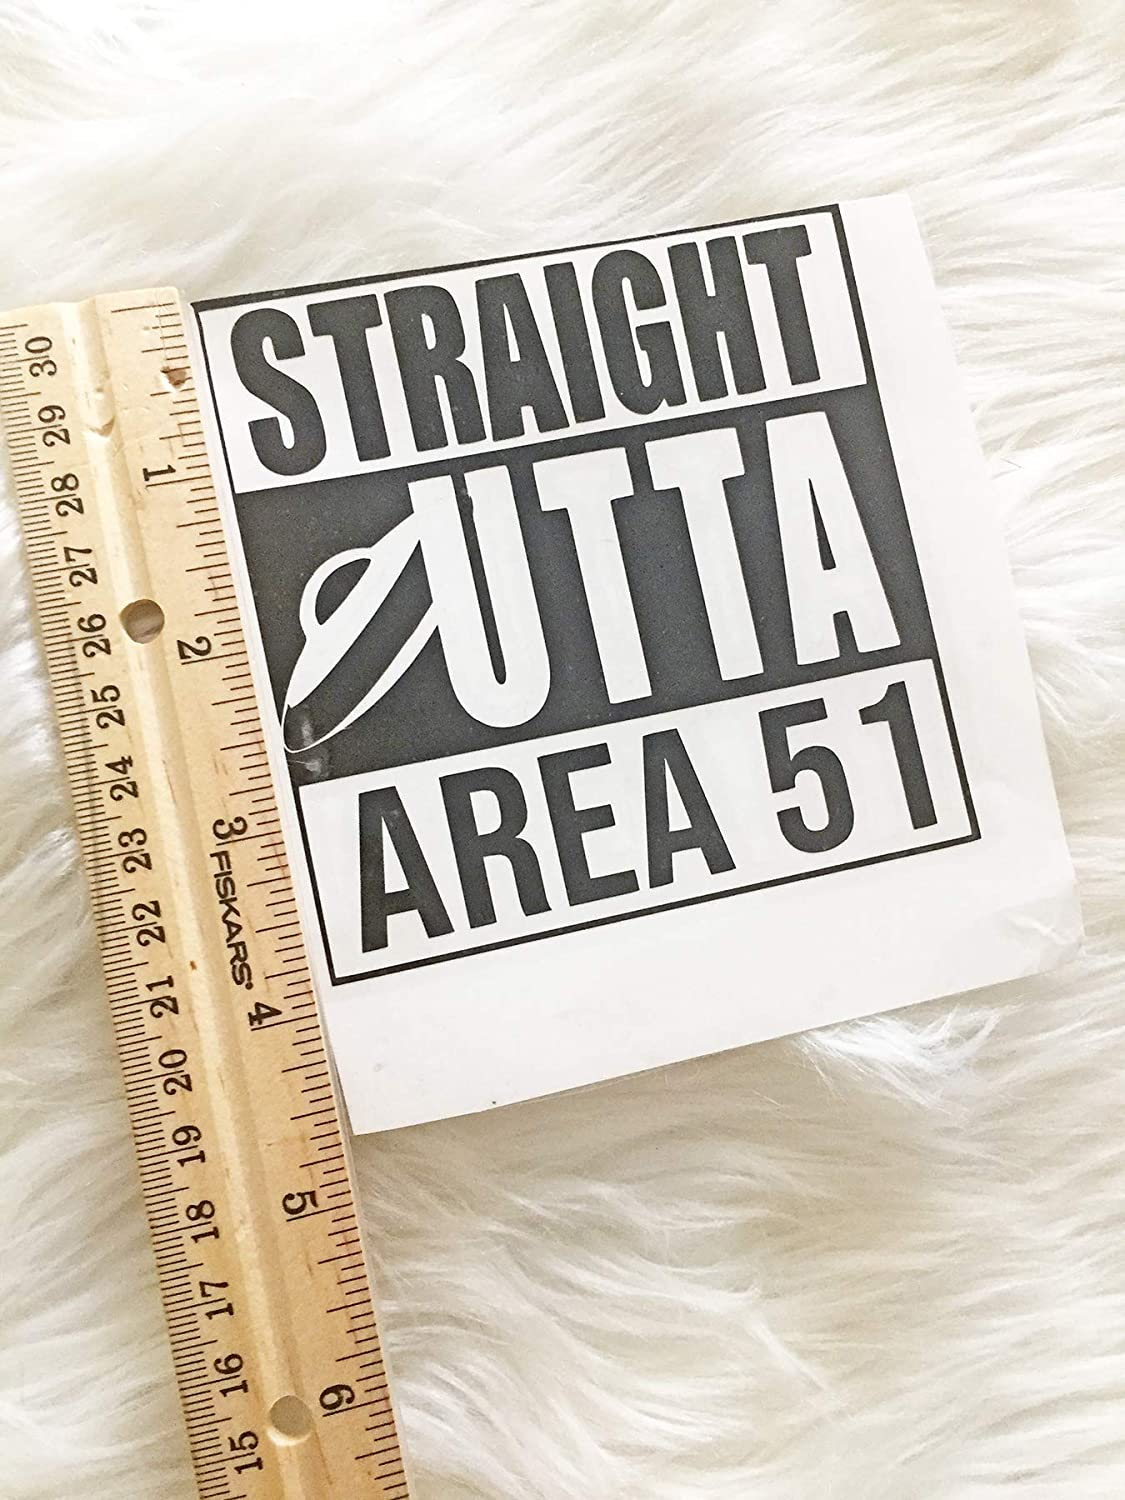 Car Window Decals Set of 3 Area 51 Vinyl Decal Stickers Handmade in USA